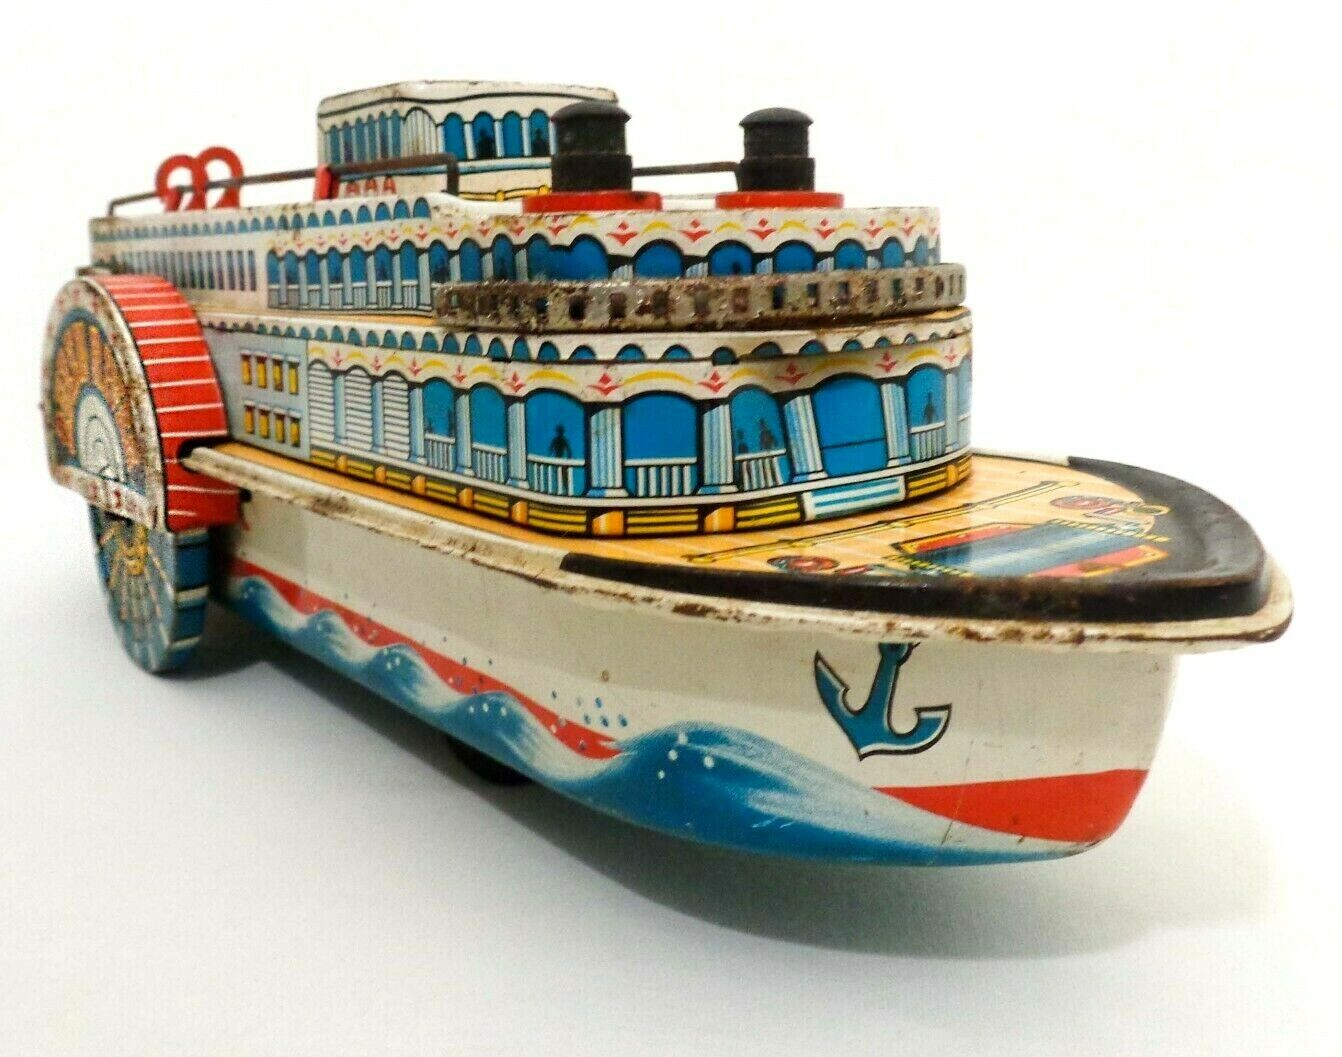 QUEEN RIVER VINT LITHO'D TIN SIDEWHEELER RIVER BOAT MODERN TOYS (JAPAN) BAT. OP.